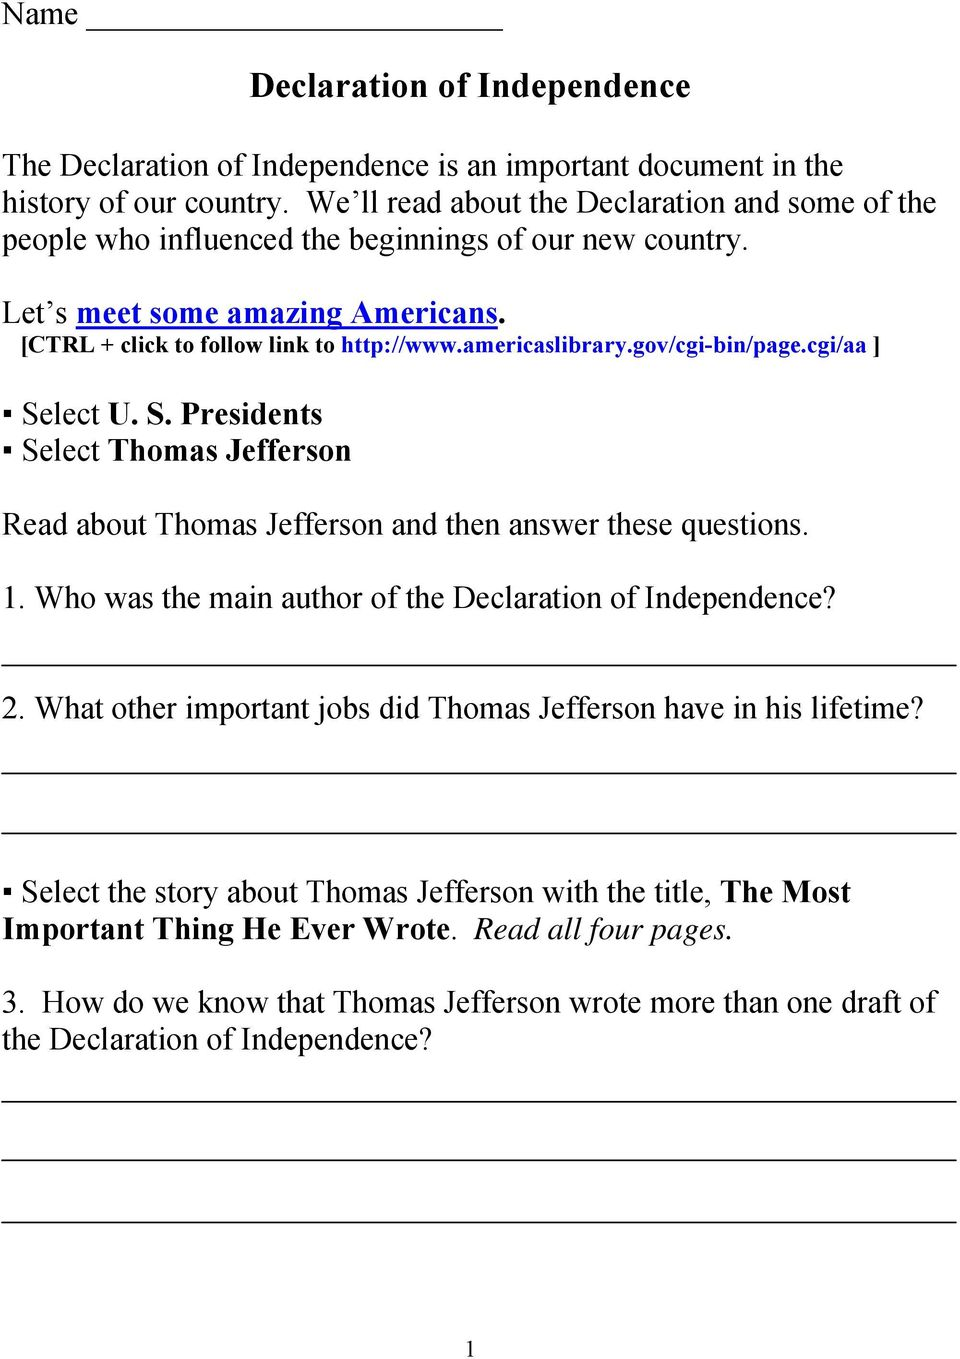 gov/cgi-bin/page.cgi/aa ] Select U. S. Presidents Select Thomas Jefferson Read about Thomas Jefferson and then answer these questions. 1. Who was the main author of the Declaration of Independence? 2.